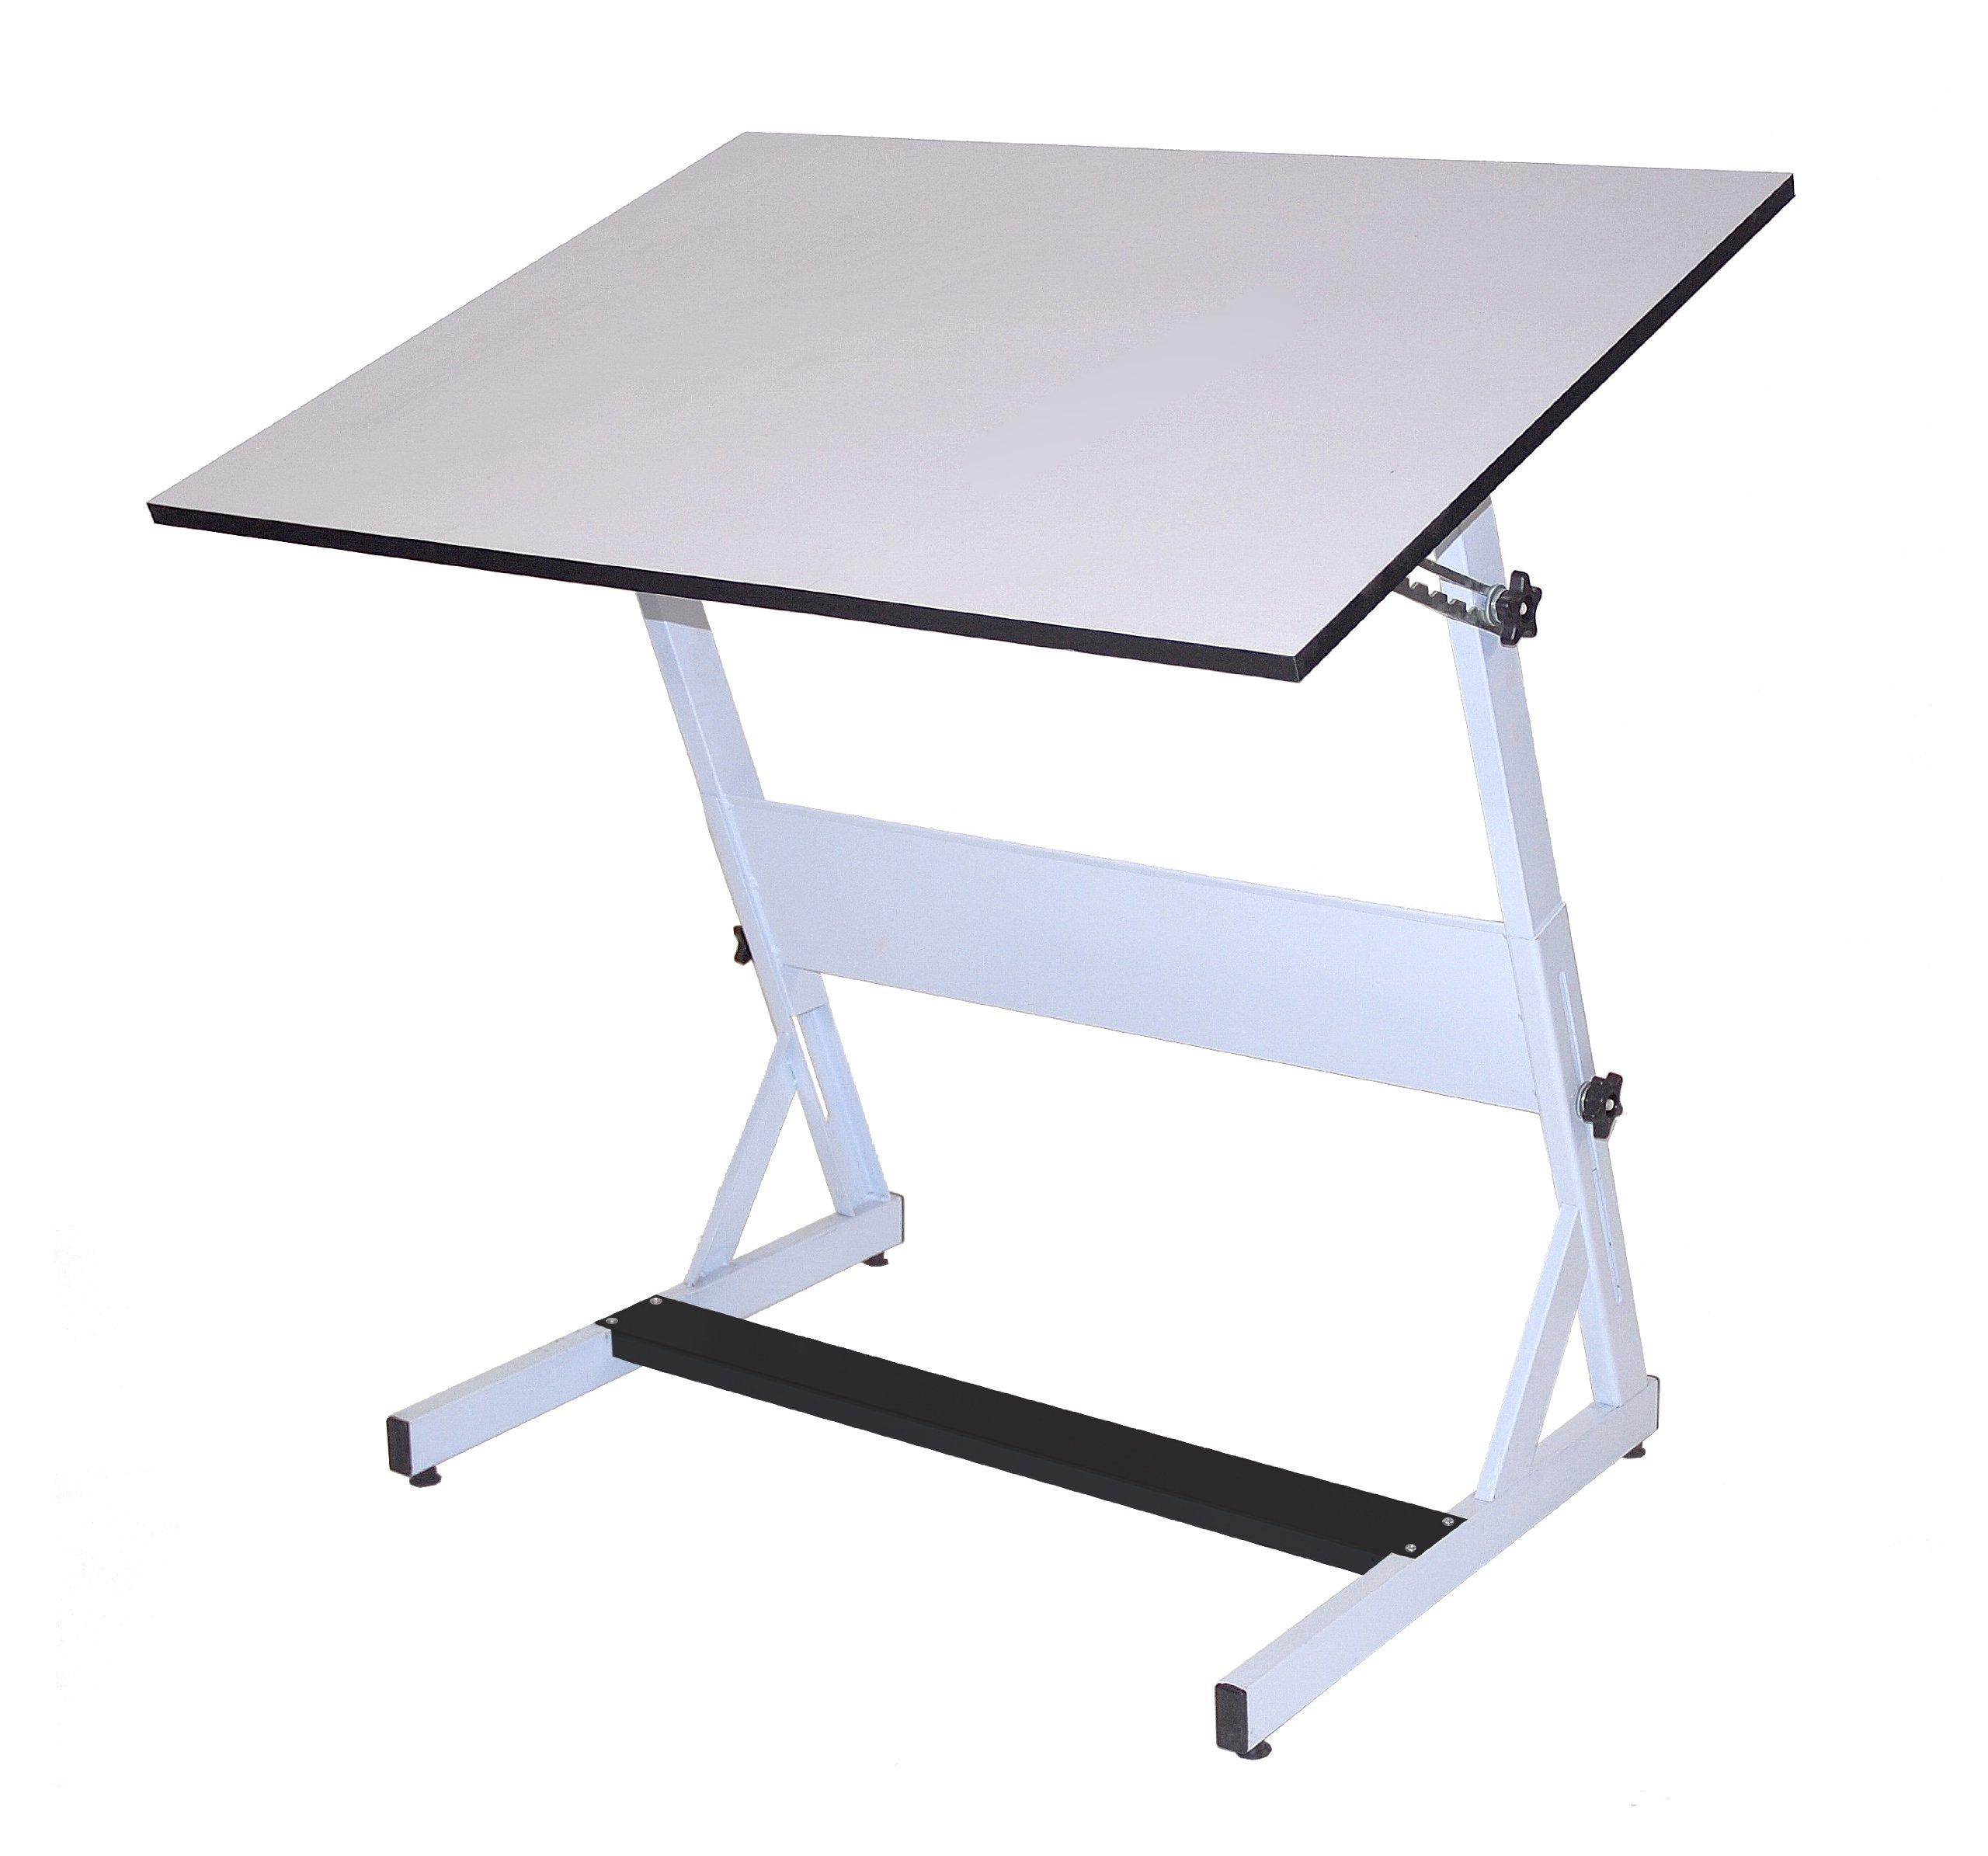 Martin MXZ Drawing and Drafting White Table, 30'' D x 42'' W Tiltable Top, 1 Each (U-DS5000WC)